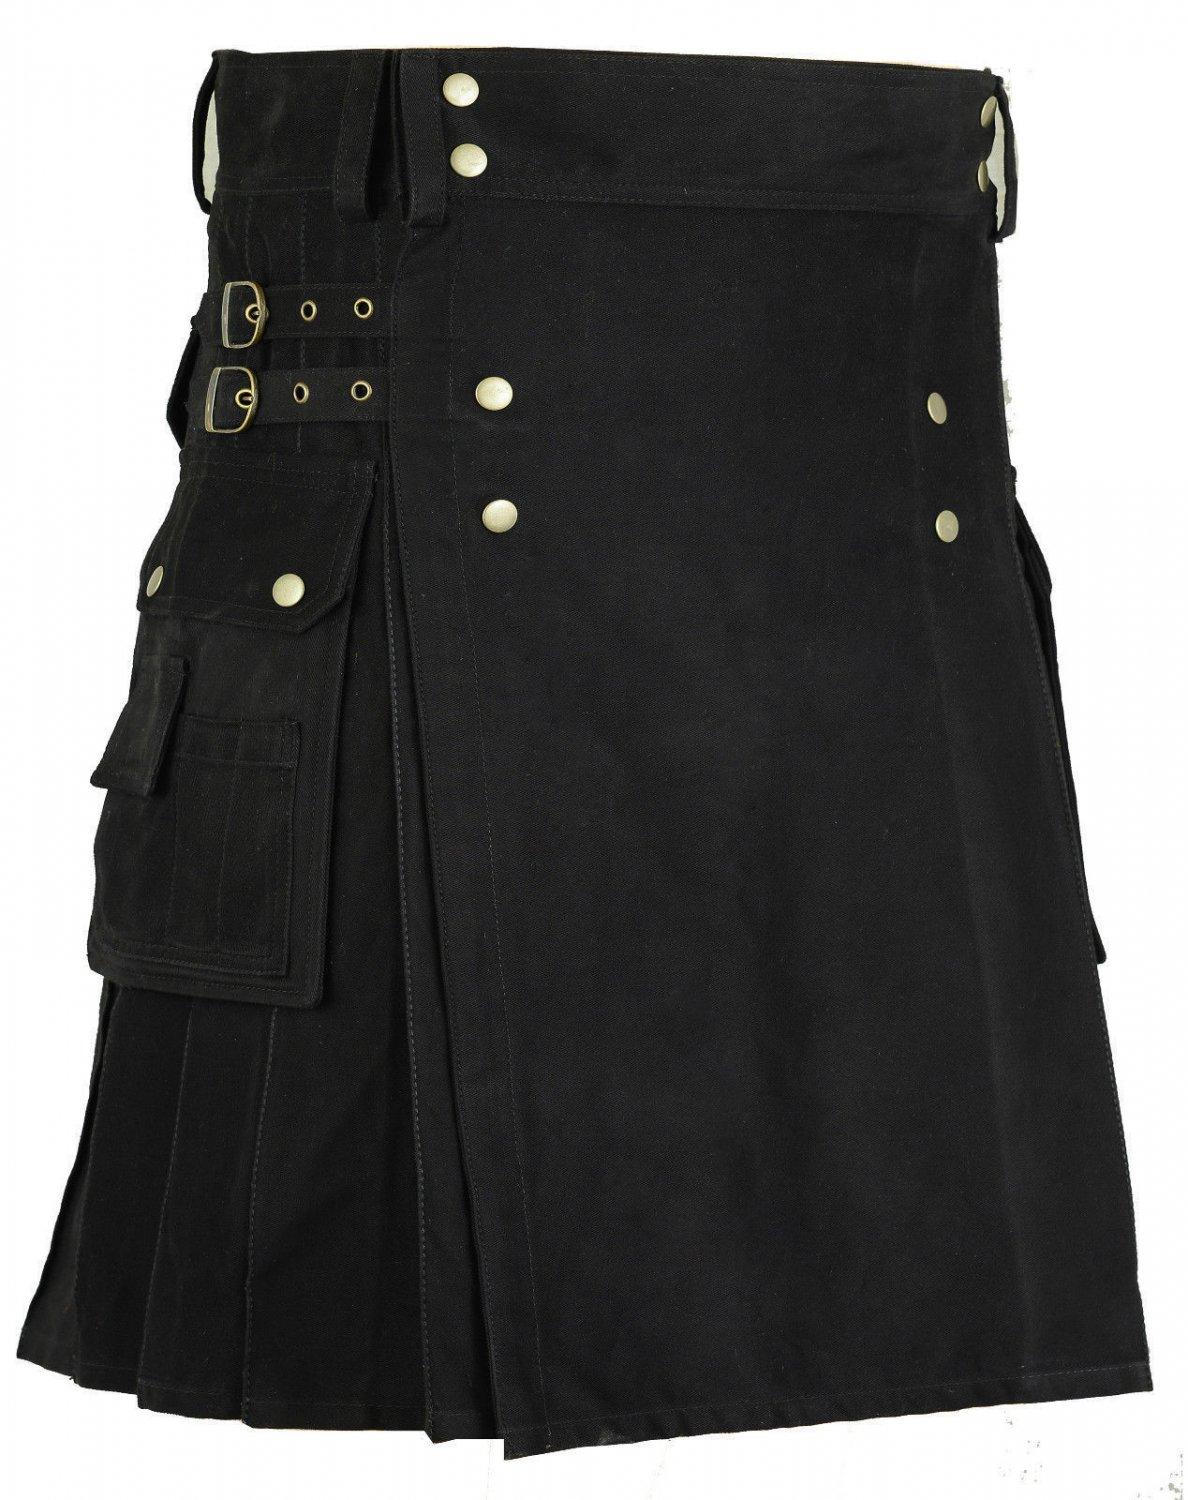 Size 48 New Scottish Cotton Kilt Deluxe Goth Outdoor Utility Kilts Highland Skirt